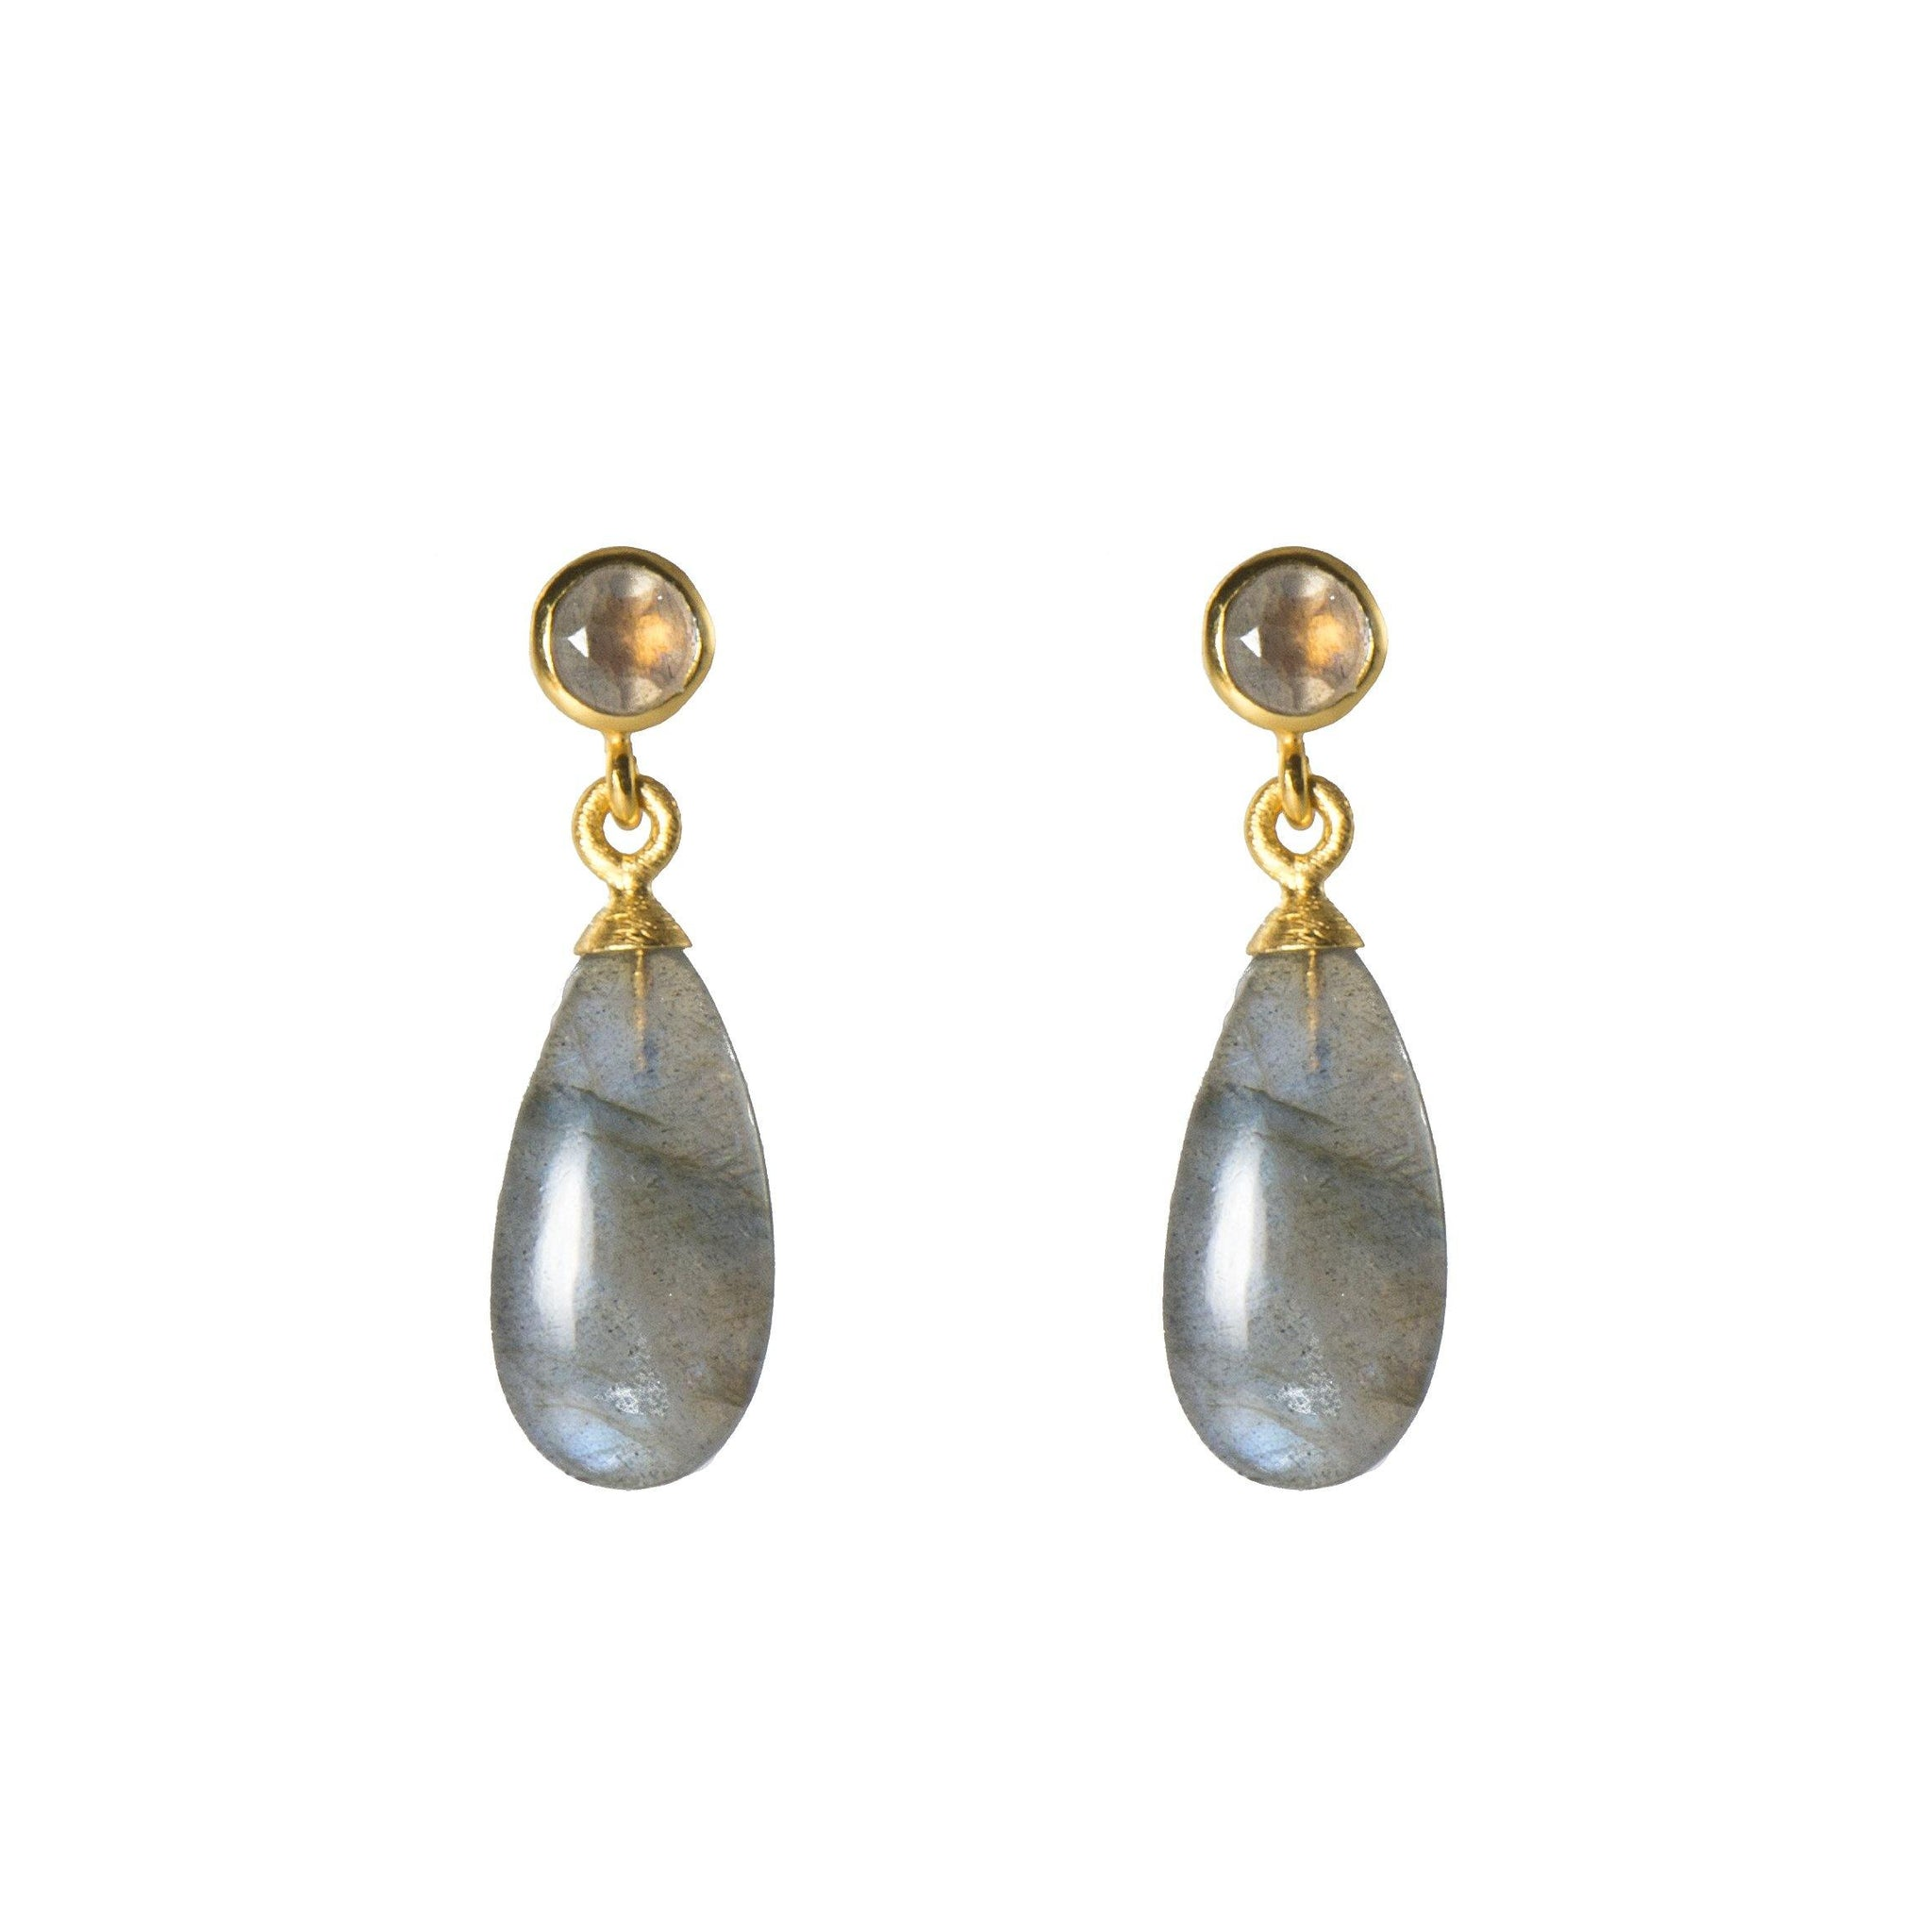 FACETED LABRADORITE AND POLISHED LABRADORITE EARRINGS FAIR TRADE 24K GOLD VERMEIL - Joyla Jewelry